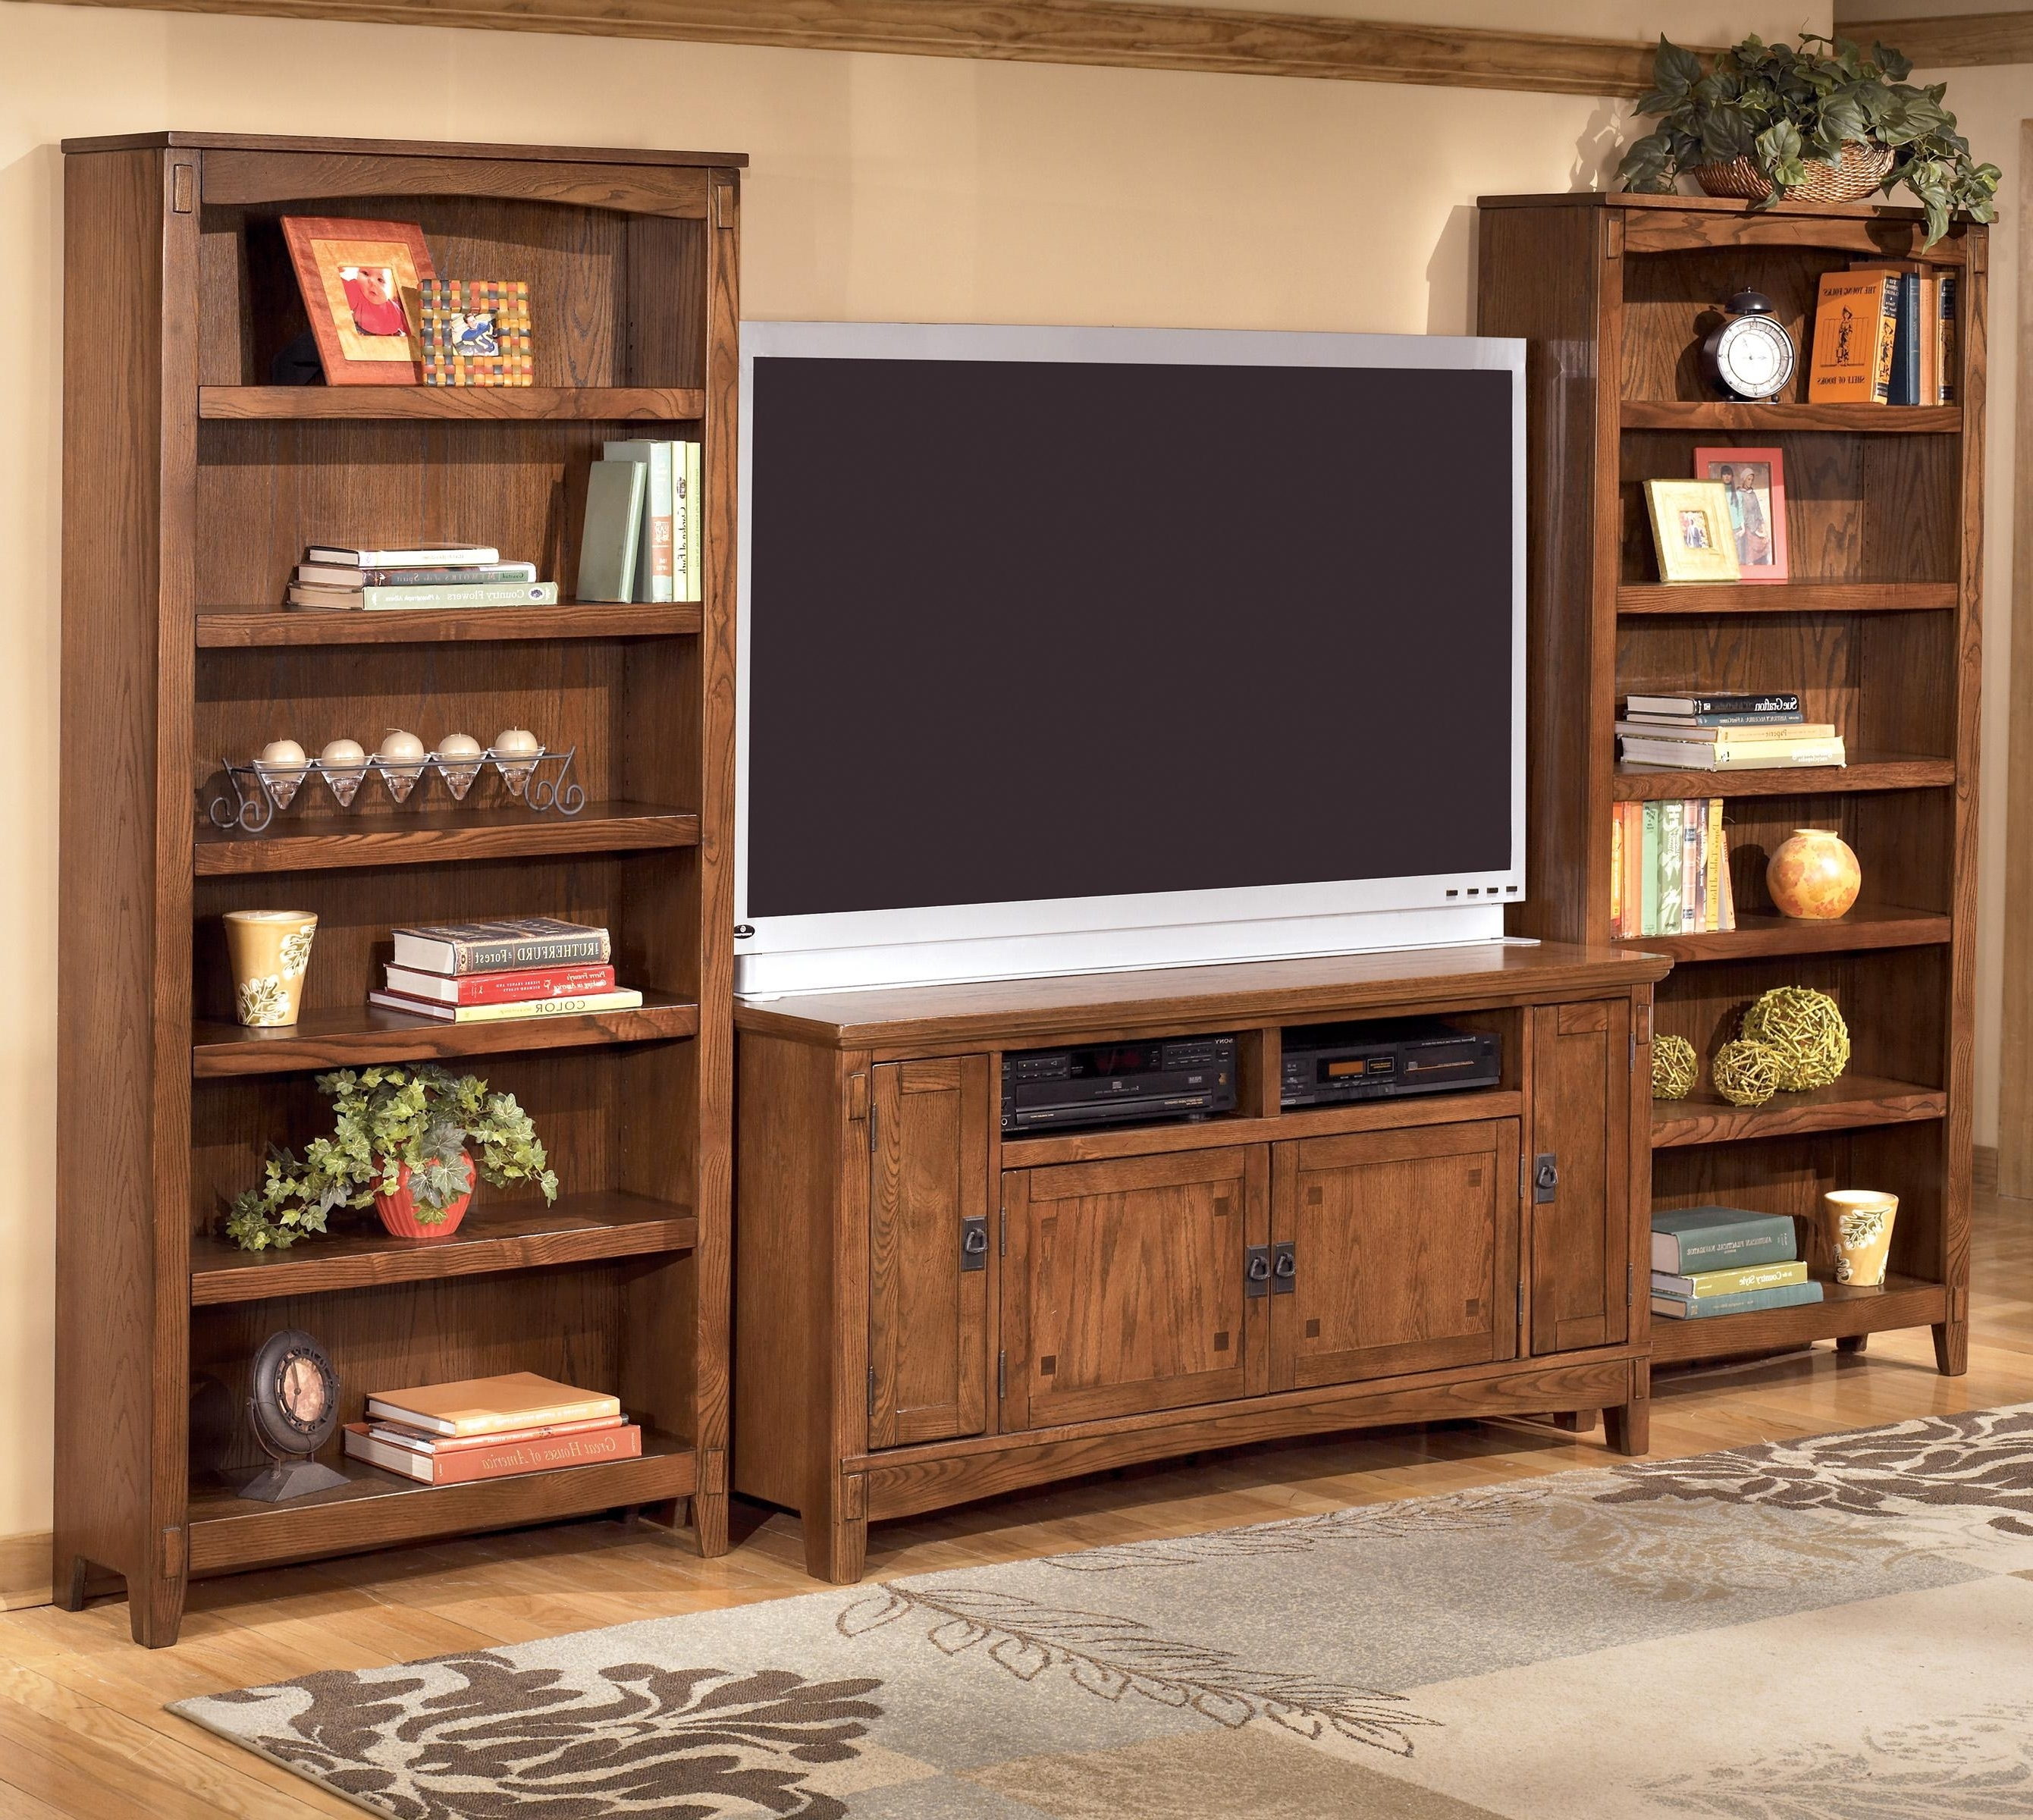 Most Popular Bookshelves With Tv Space Pertaining To Shelves : Terrific Excellent Tv Cabinet And Bookcase Modern Stand (View 8 of 15)